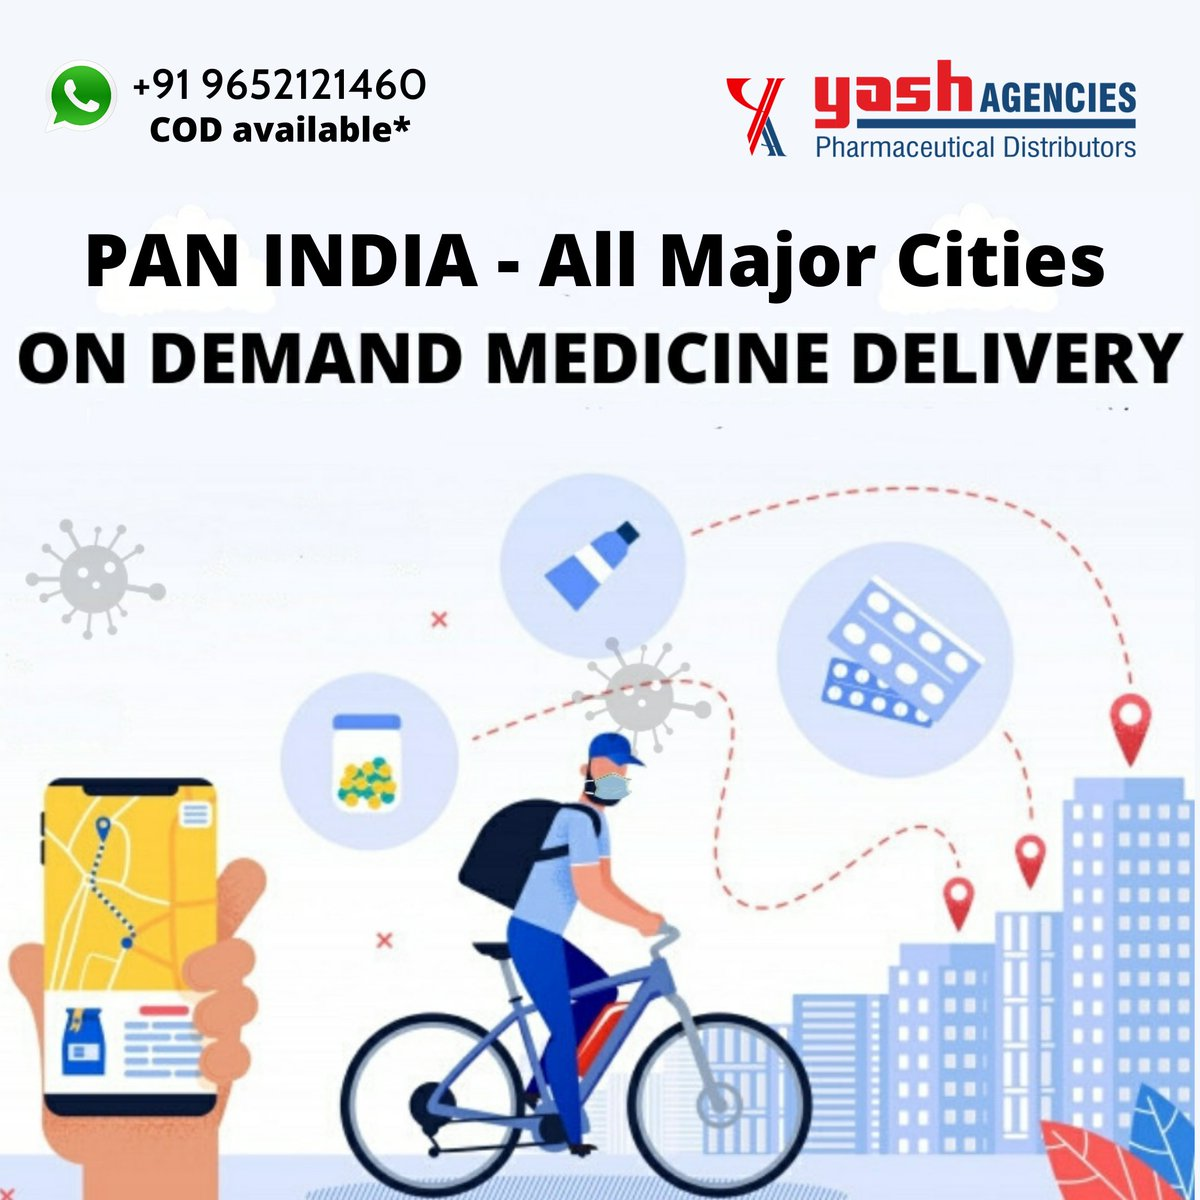 Let's together beat our geographic limitations. Delivering PAN India now!  We are all in this together 🇮🇳  #India #COVID19India #medicine #delivery #COVID19 #Hyderabad #CovidSos #emergencymedicine #CovidResources #Indian #sosIndia https://t.co/joqoDMgDmU